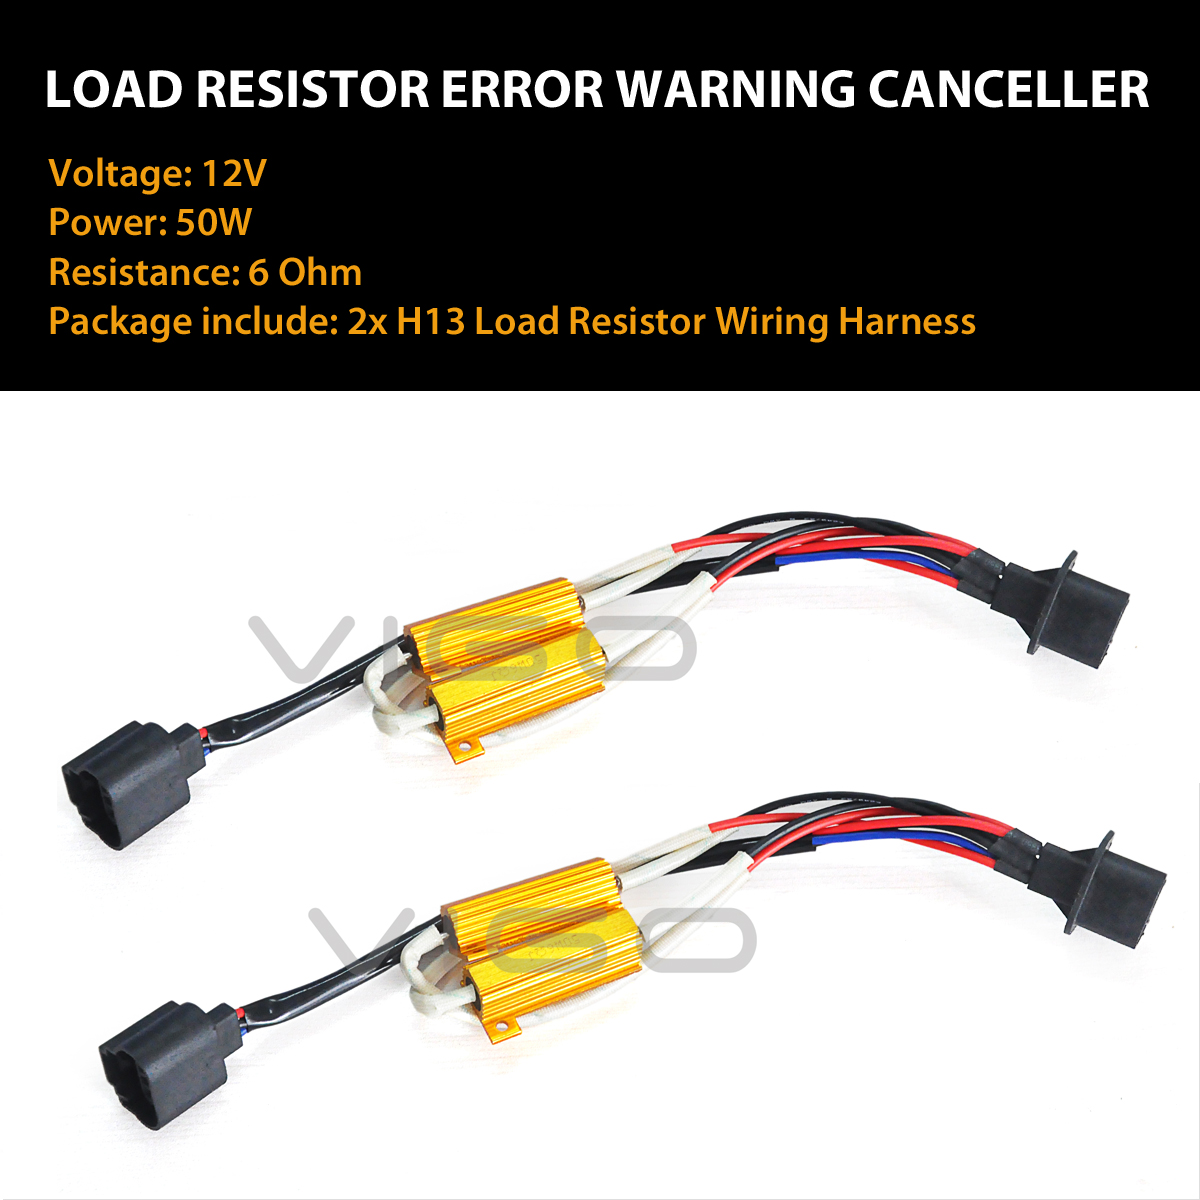 2x H13 9008 Led Headlight Bulb Canbus Error Free Anti Flicker Picture Of Choosing The Resistor To Use With Leds Click Below Photo Buy Other Lasfit Bulbs Together